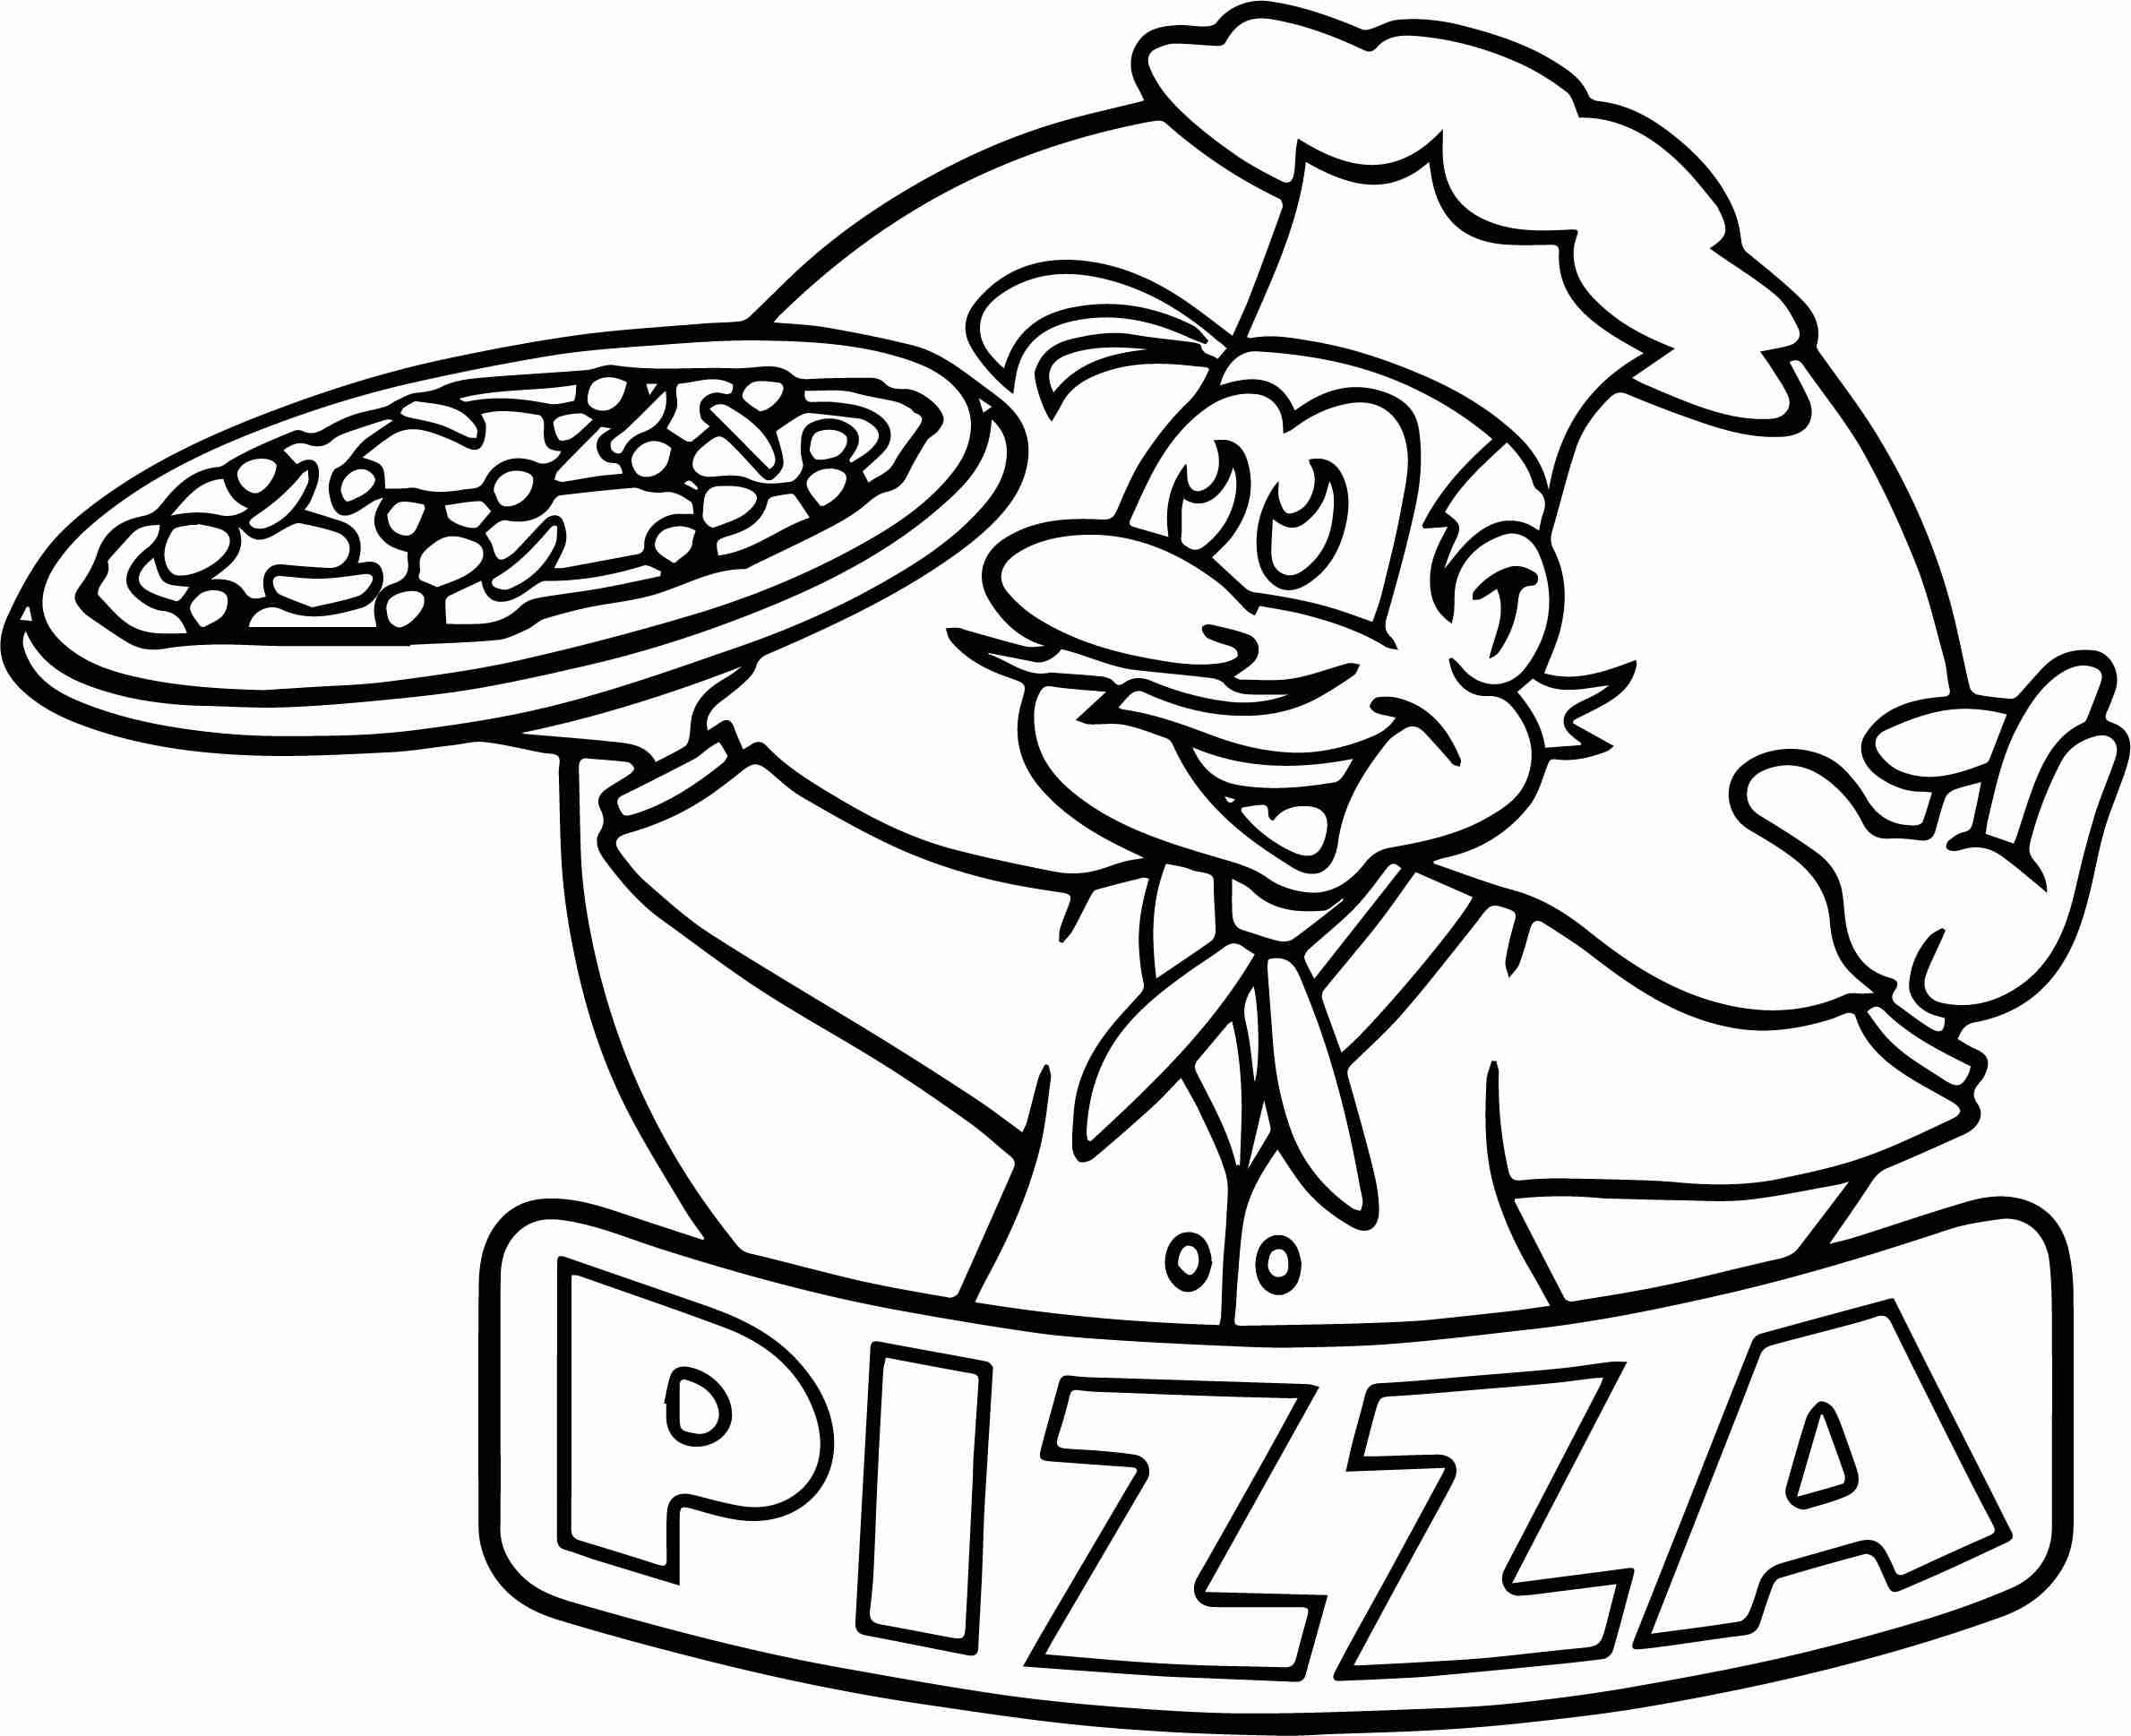 2379x1938 Cartoon Picture Of Pizza Coloring Page Wecoloringpage Brilliant